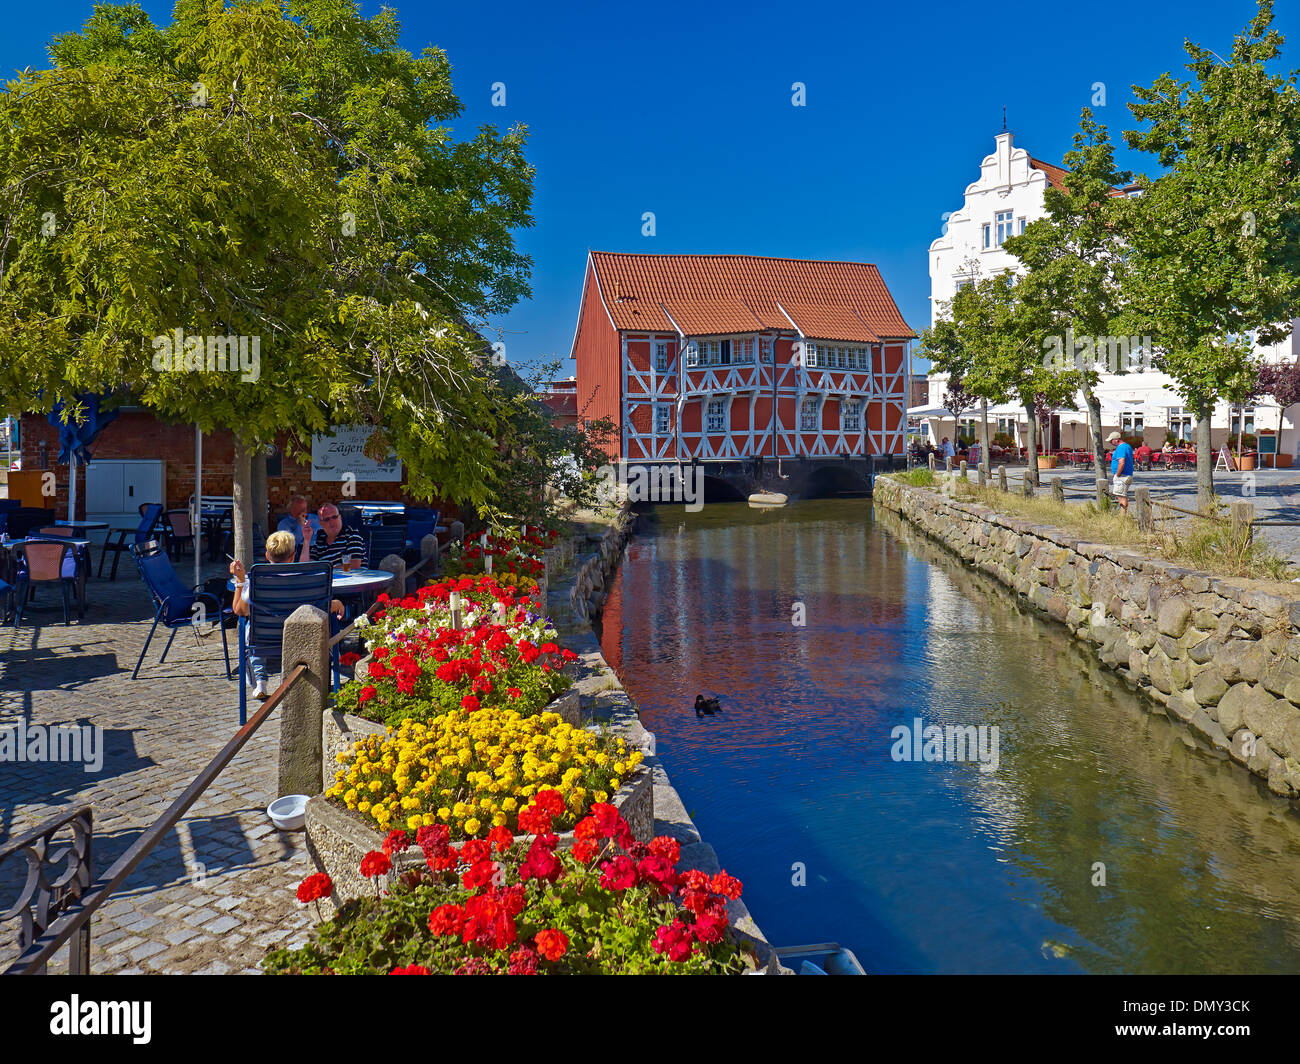 Half-timbered house Gewoelbe with Grube River, Hanseatic city of Wismar, Mecklenburg-Vorpommern, Germany - Stock Image